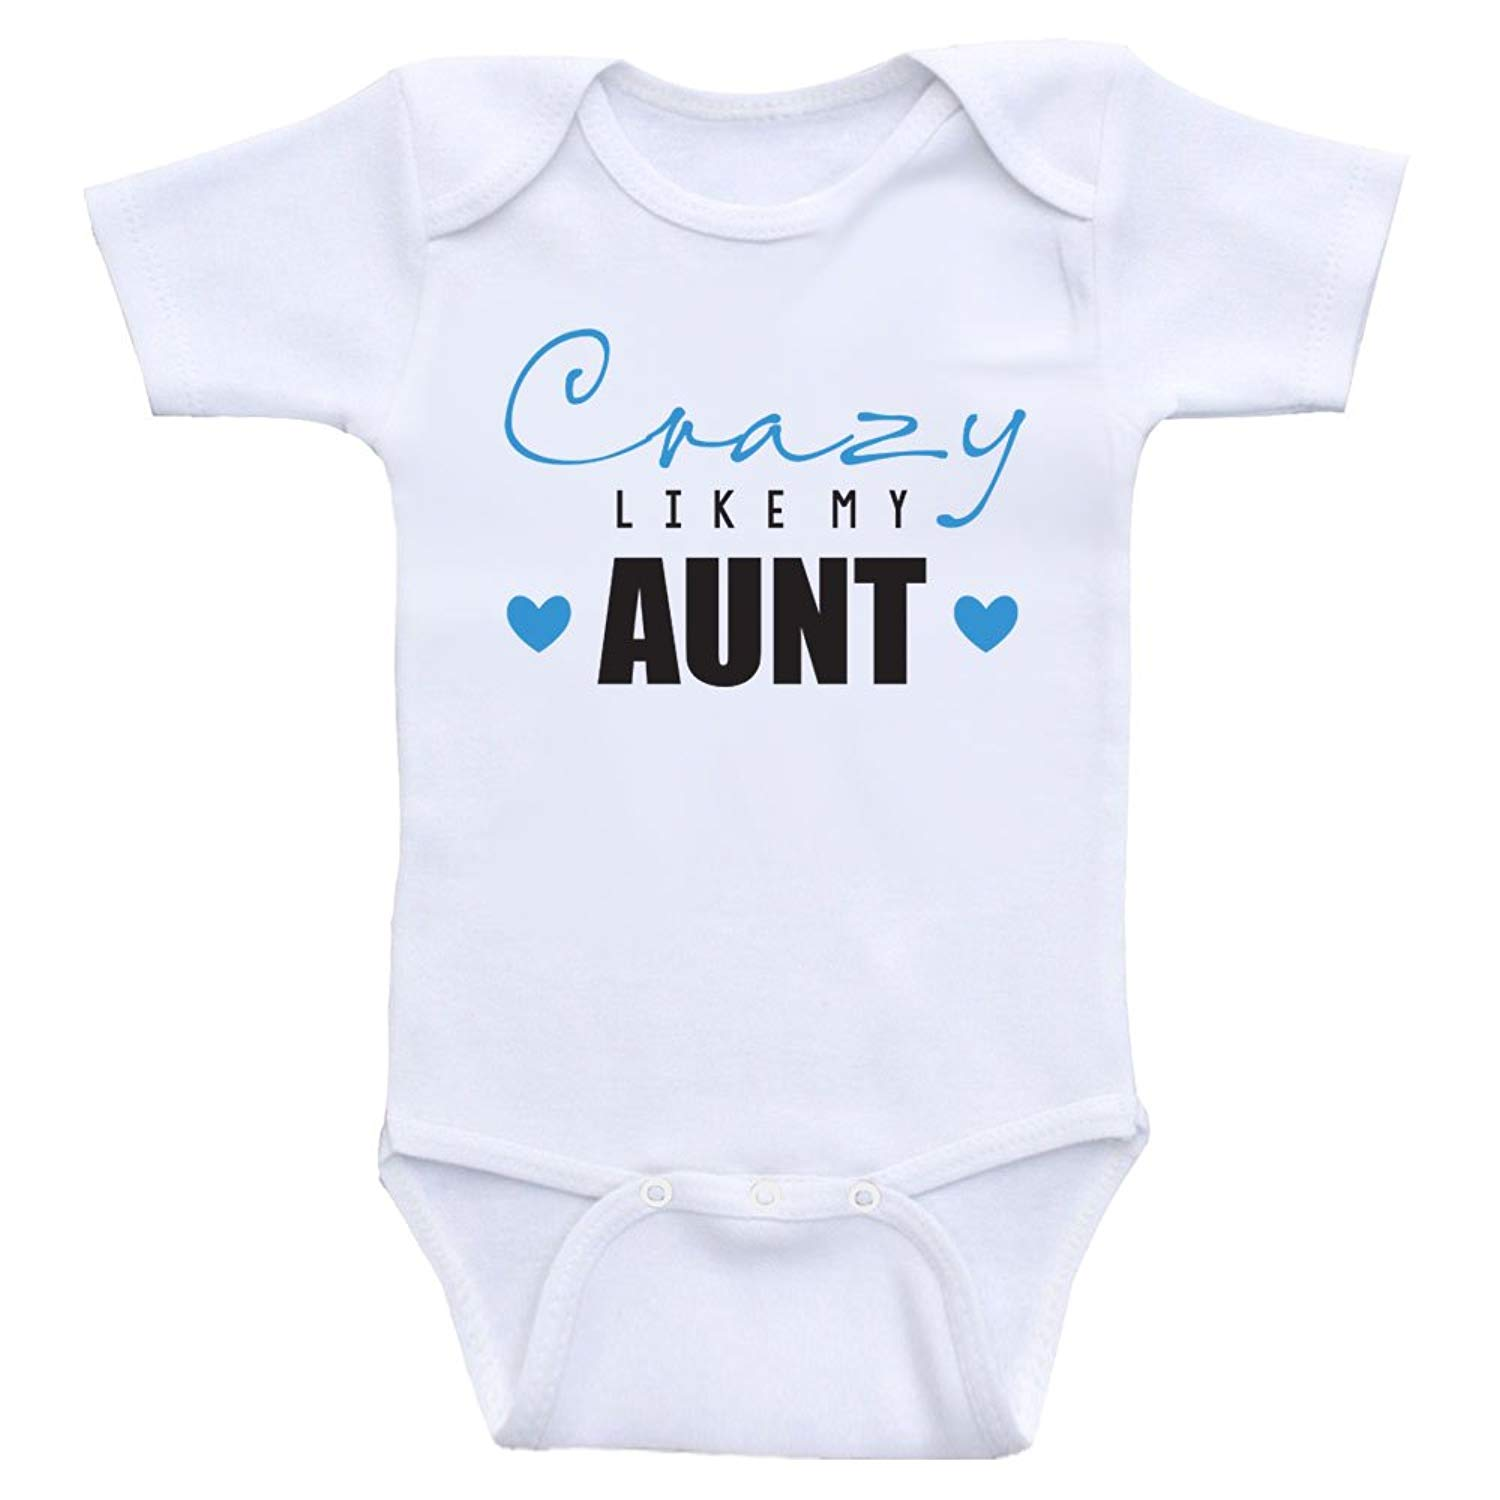 f7251231 Get Quotations · Heart Co Designs Funny Aunt Baby Clothes Crazy Like My Aunt  Funny Unisex Baby Clothes